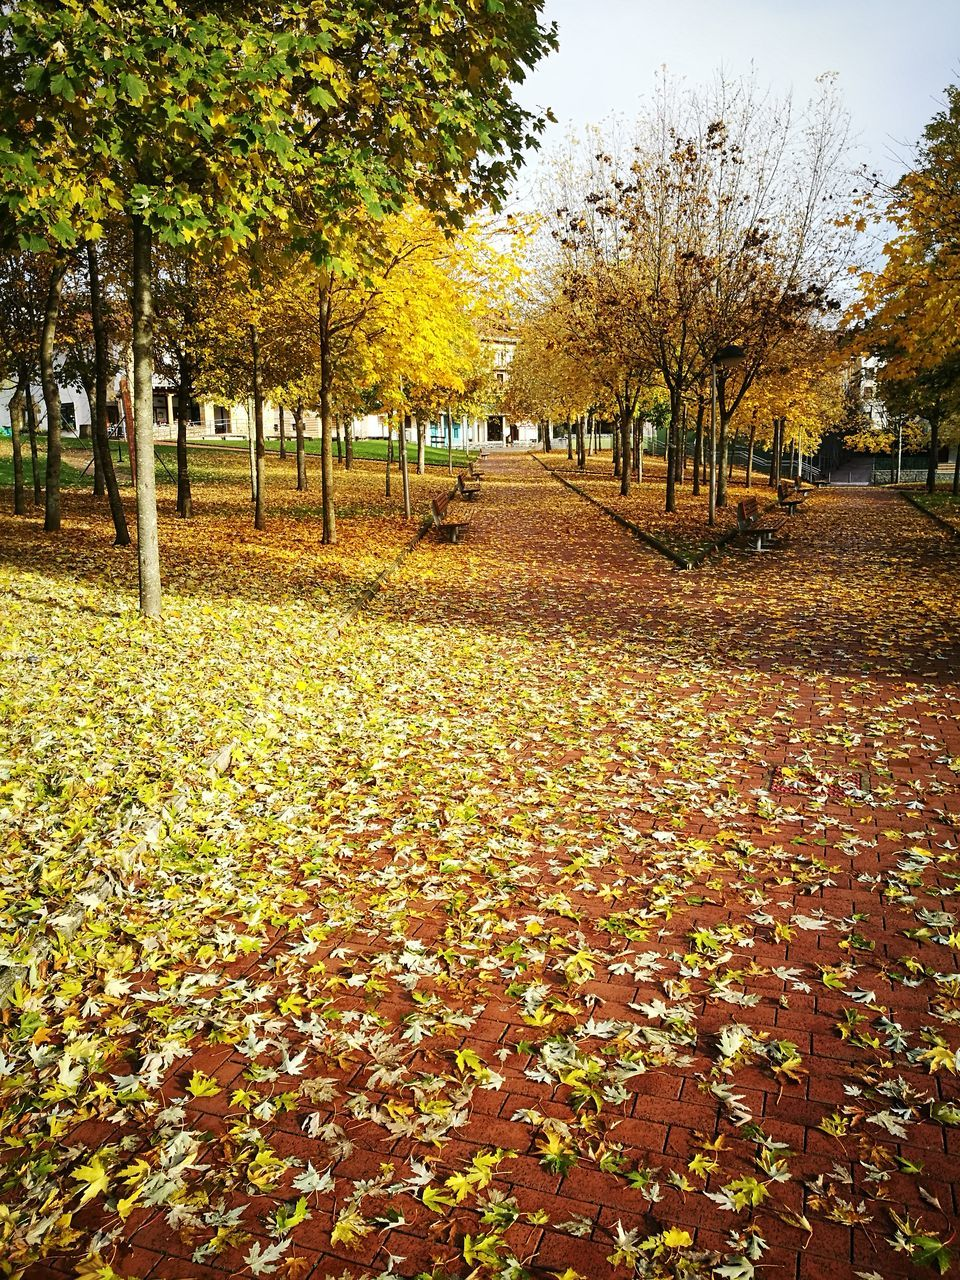 autumn, change, leaf, tree, nature, beauty in nature, tranquility, scenics, fallen, leaves, park - man made space, tranquil scene, outdoors, day, no people, growth, the way forward, landscape, maple, sky